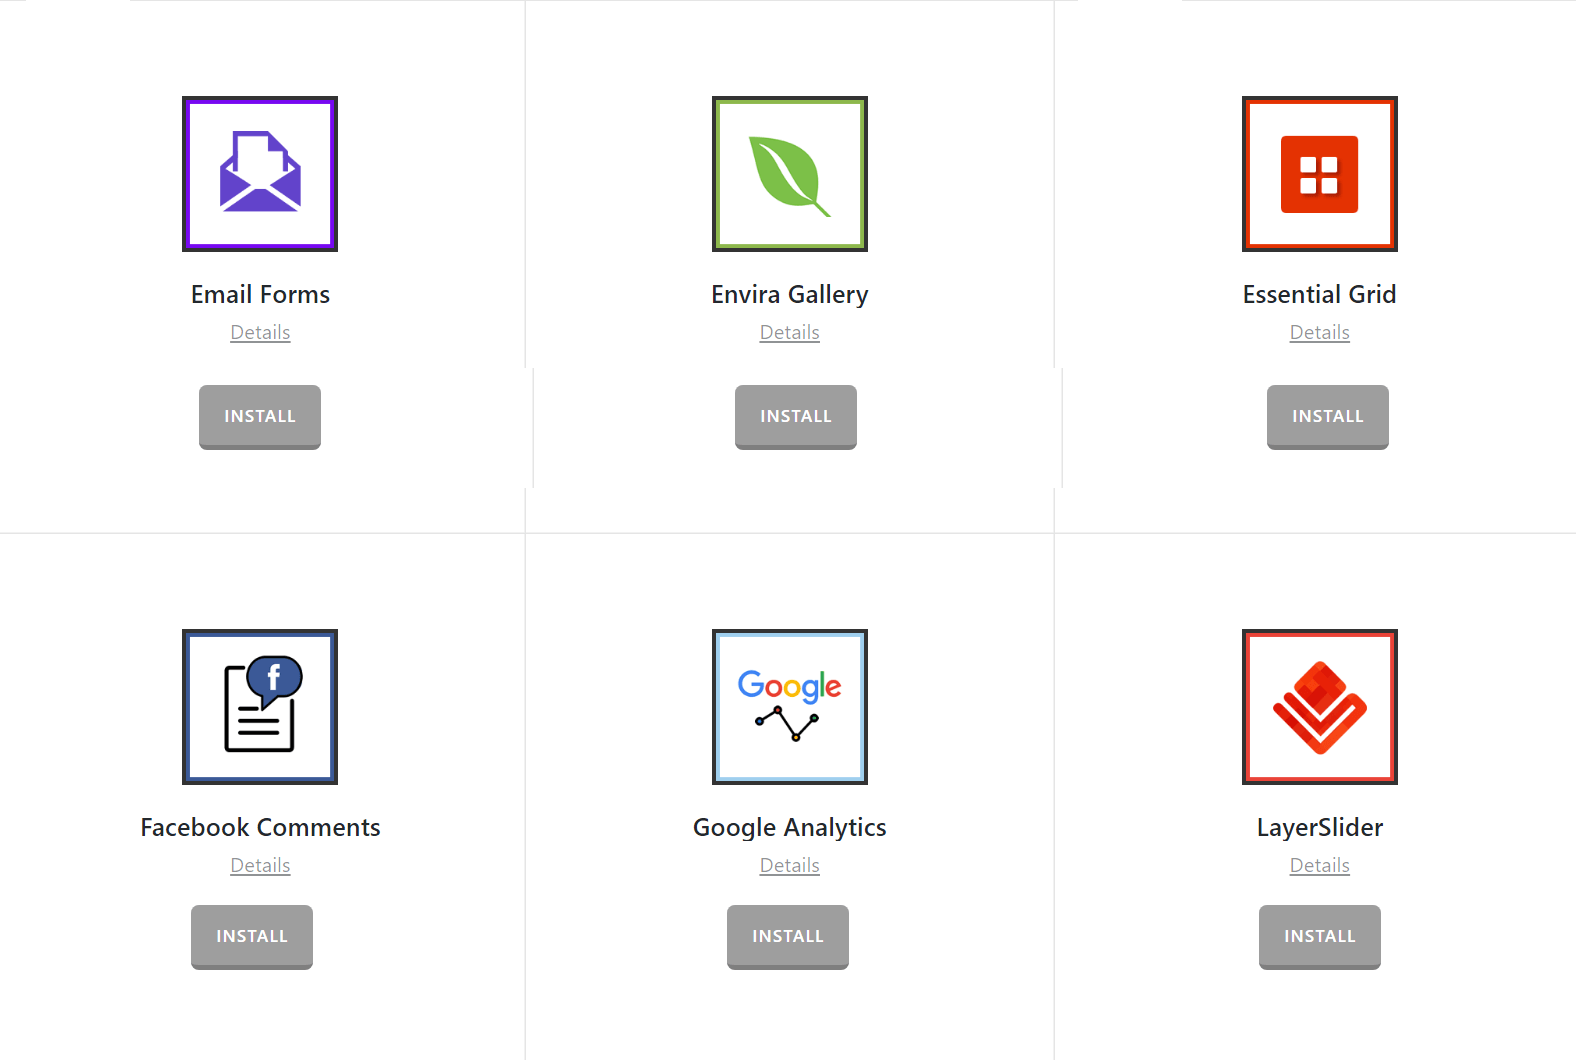 Extensions Overview